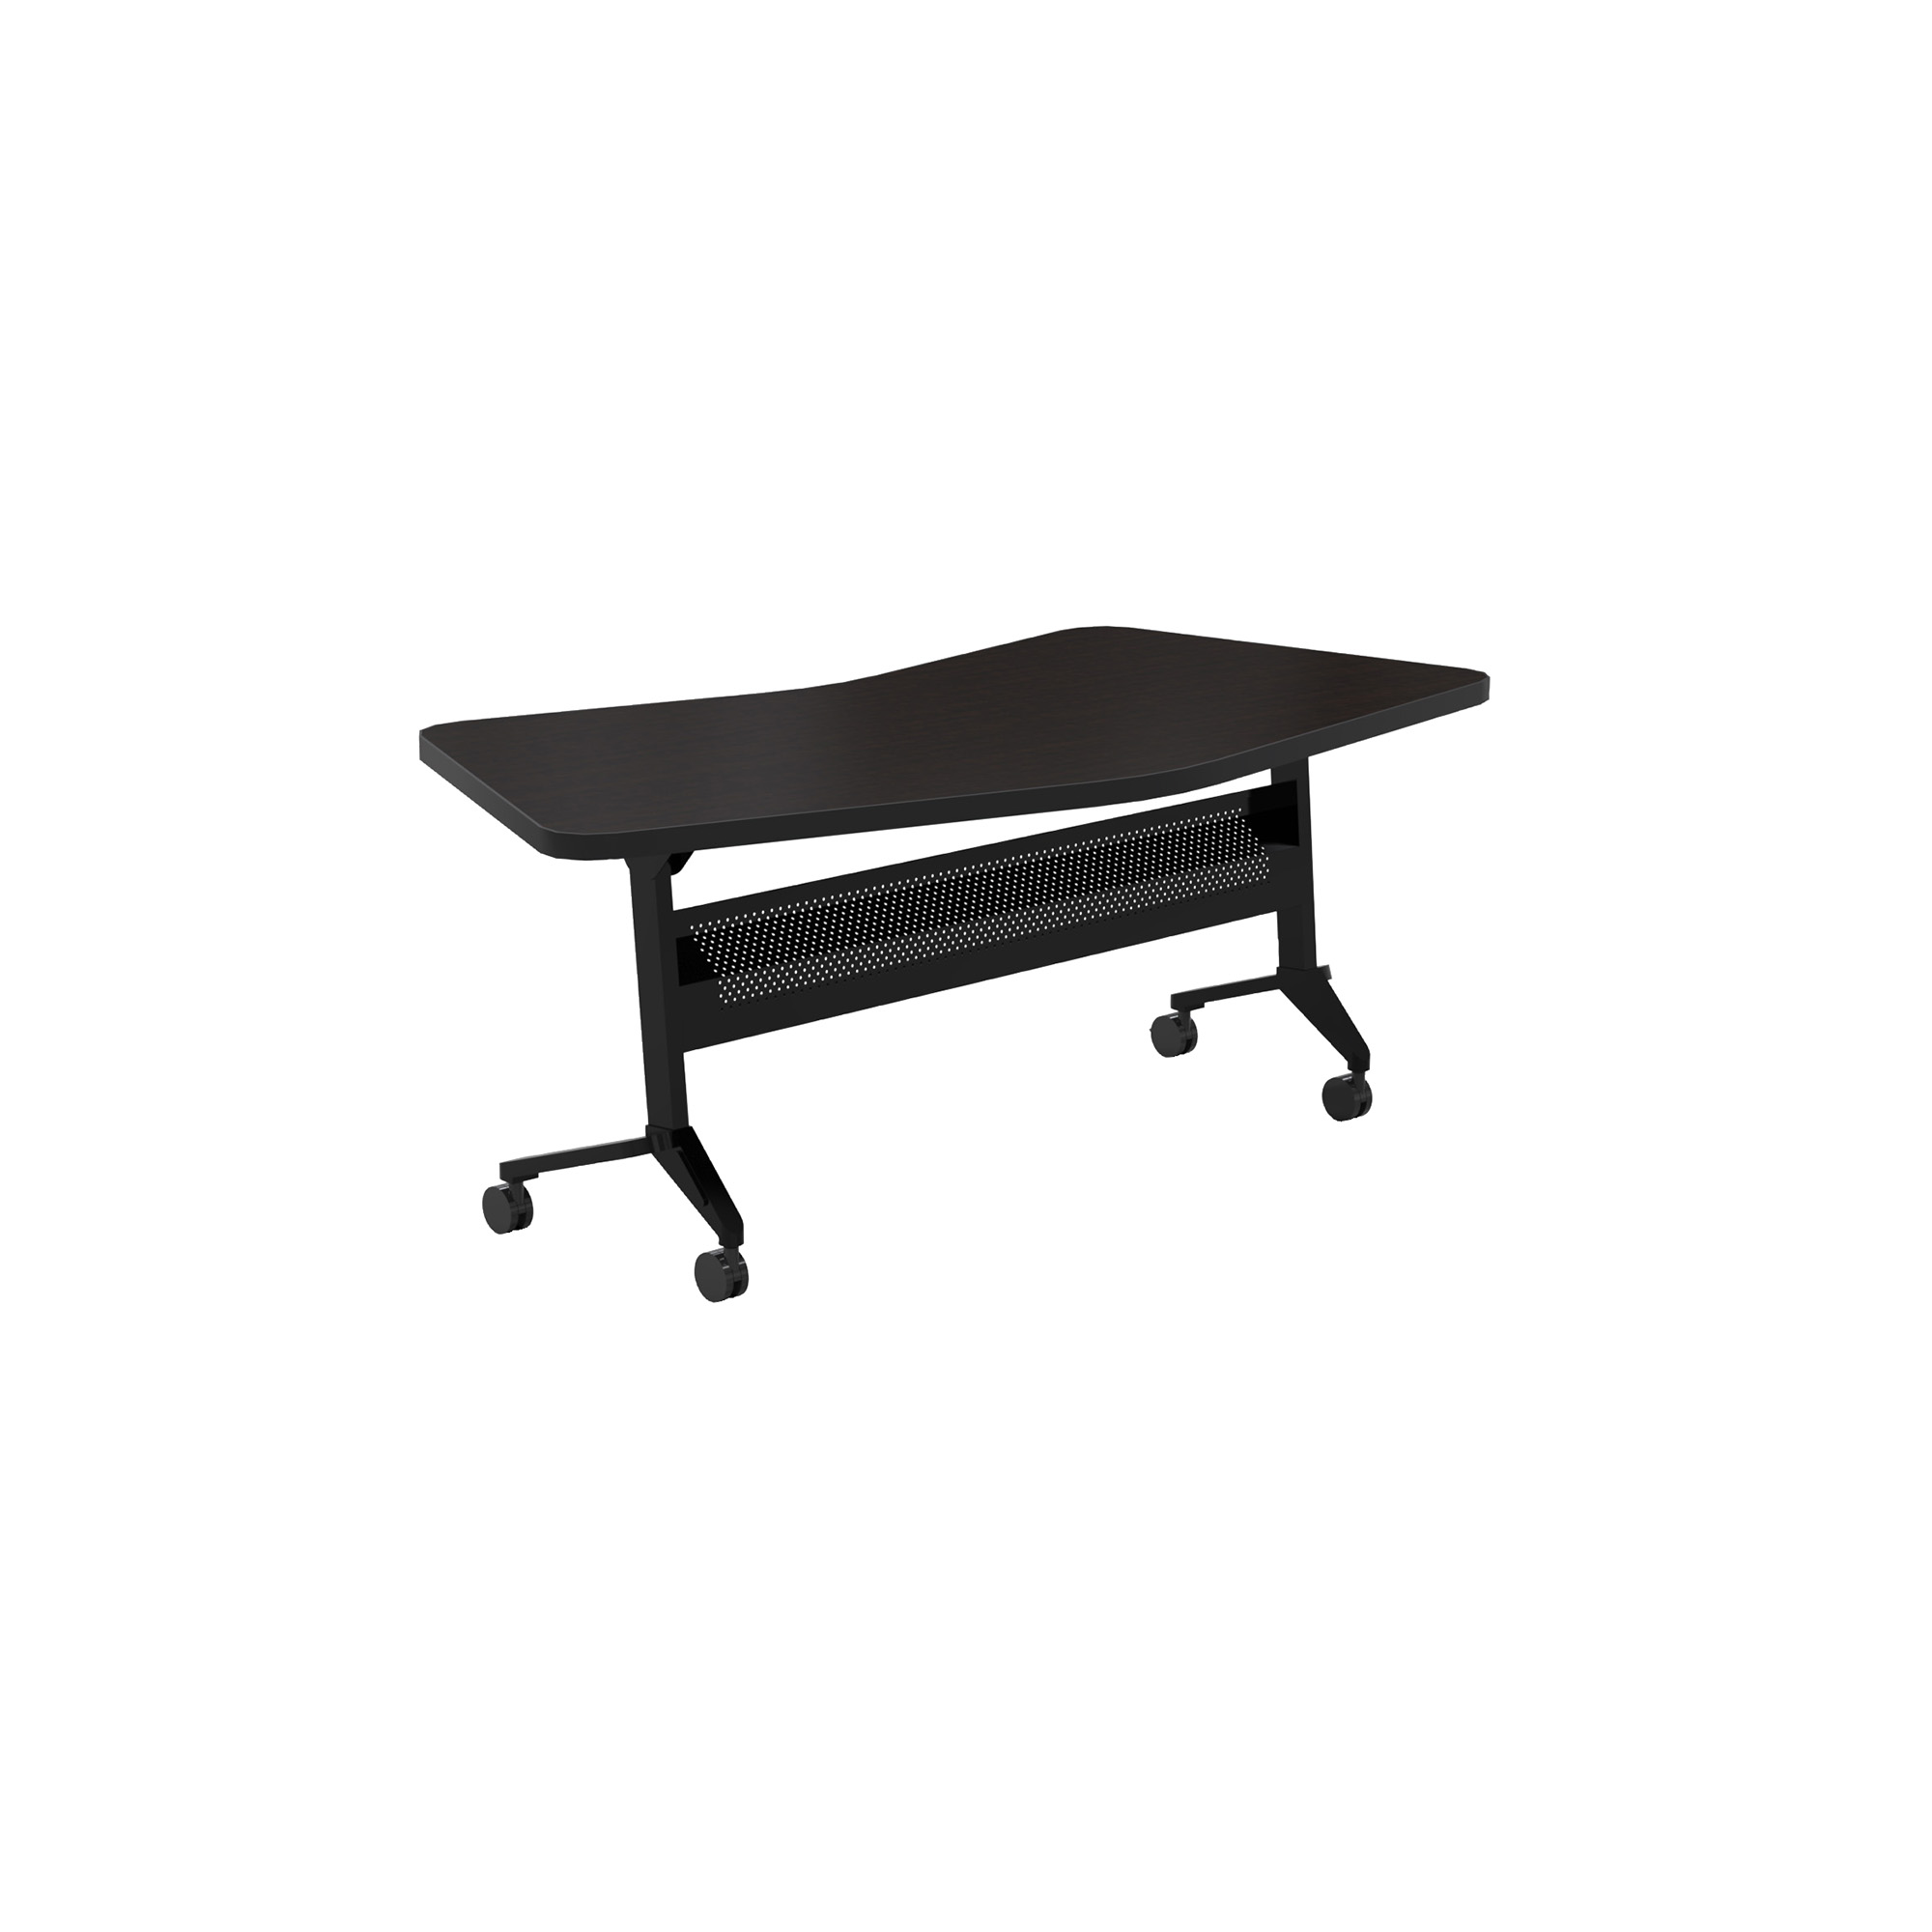 Biltmore Cherry Safco Products Flip-N-Go Training Table